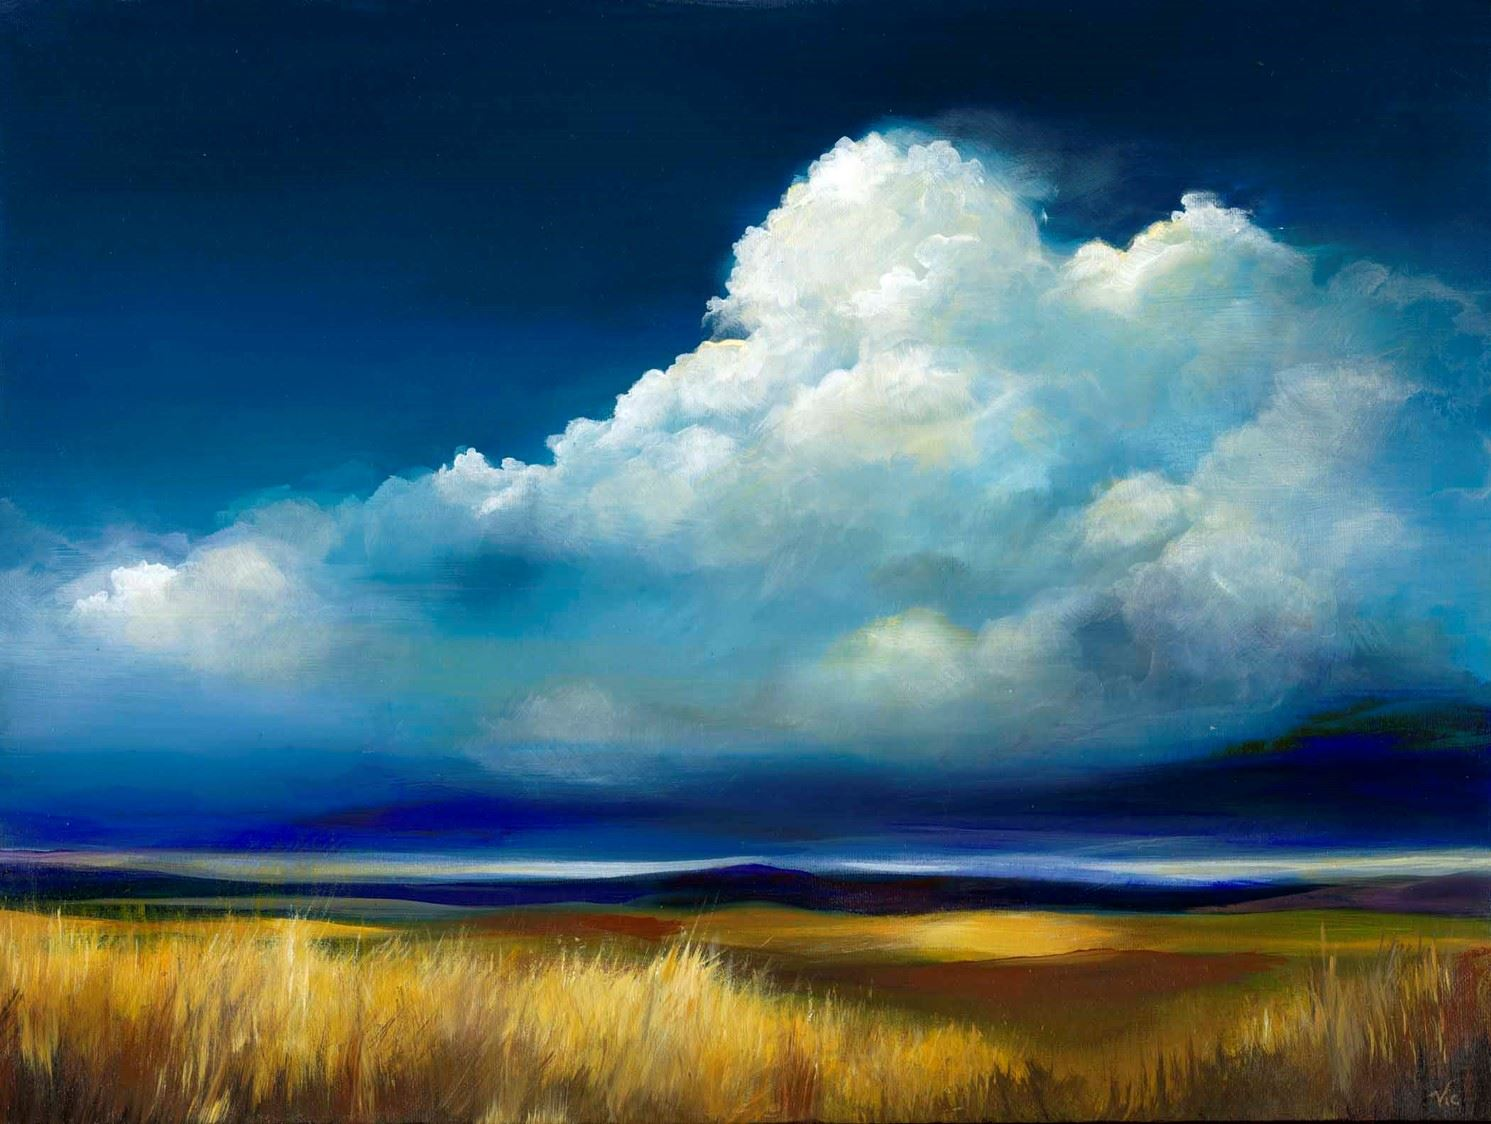 A painting of a dark blue sky with a large cloud billowing up.  The ground is a field of golden straw.